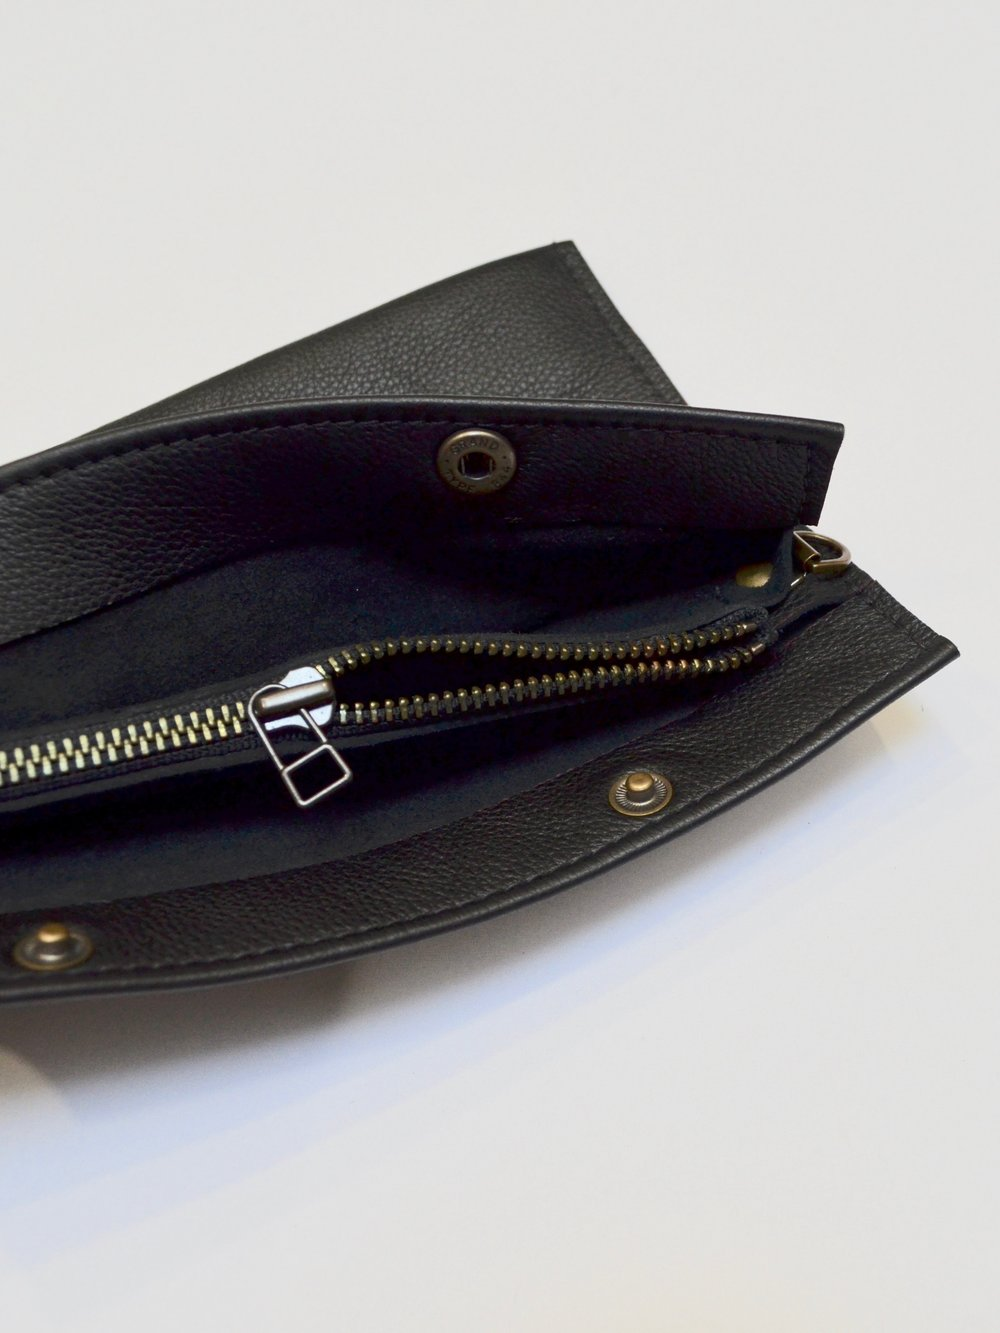 - LARGE 3 POCKET POUCH